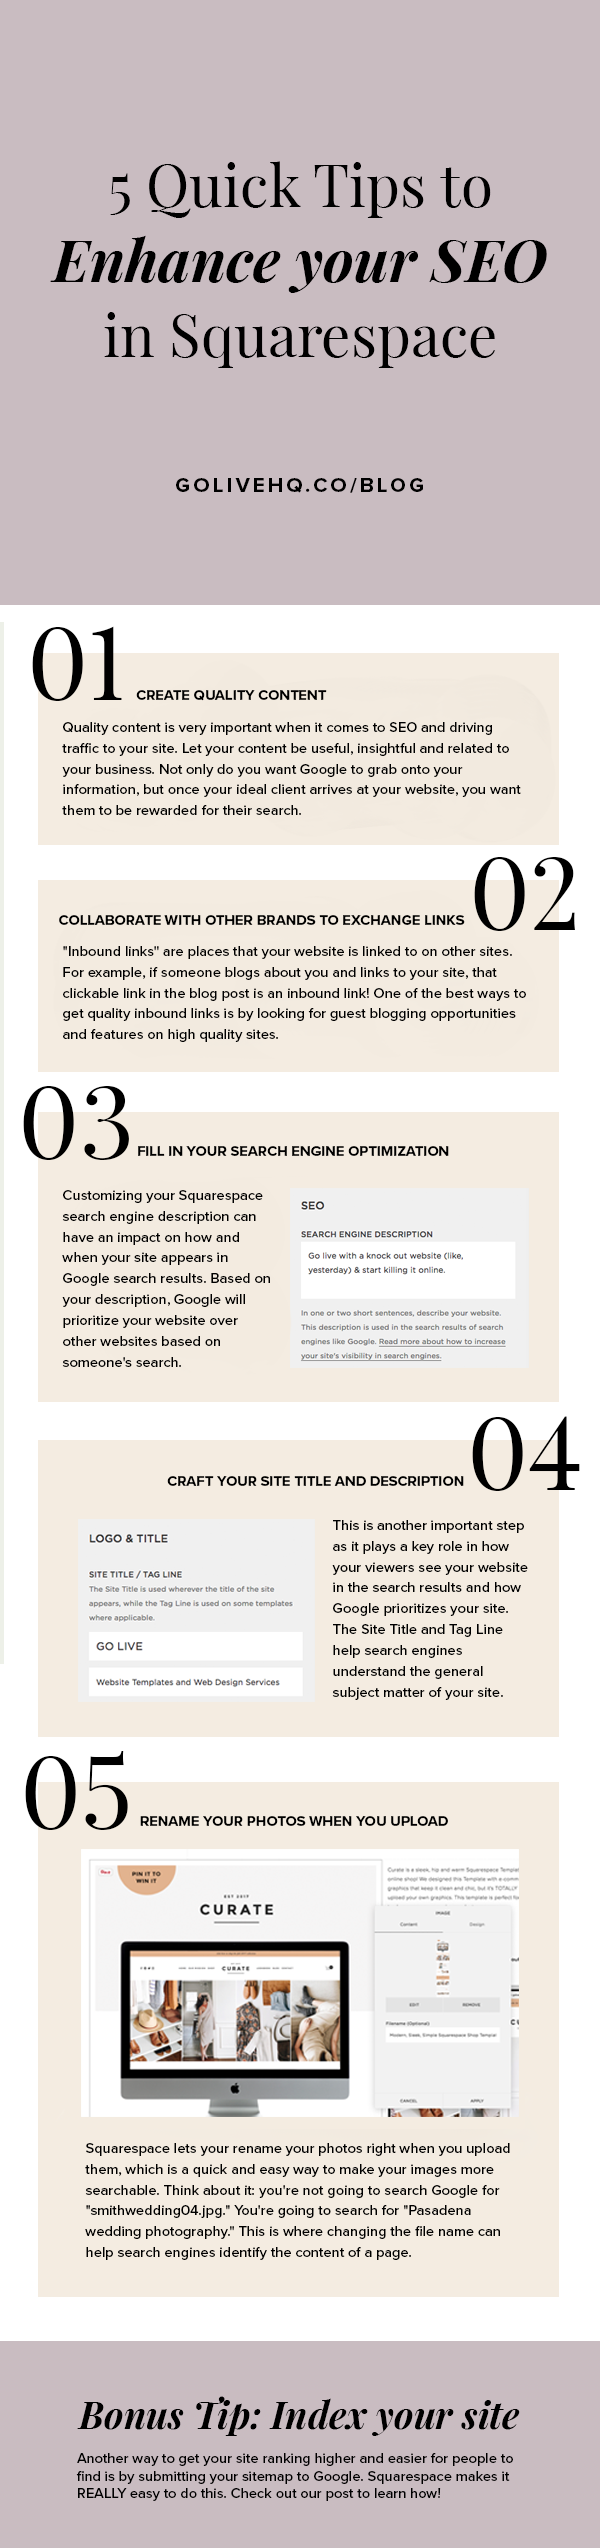 5 Quick Tips To Enhance Your SEO in Squarespace | By Go Live HQ